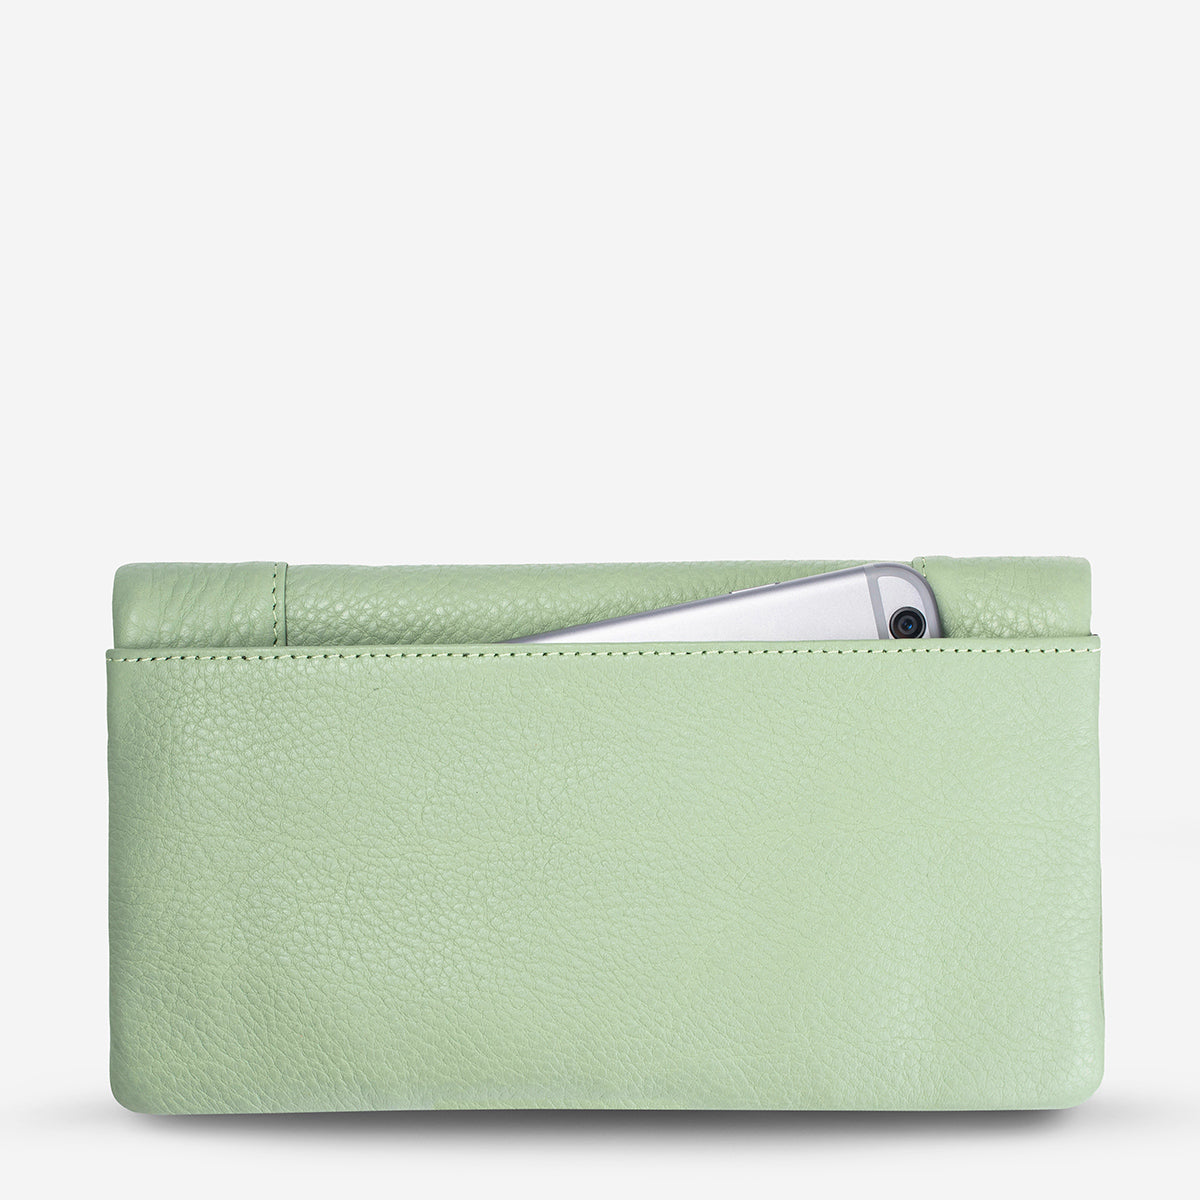 Status Anxiety Some Type Of Love Women's Leather Wallet - Mint